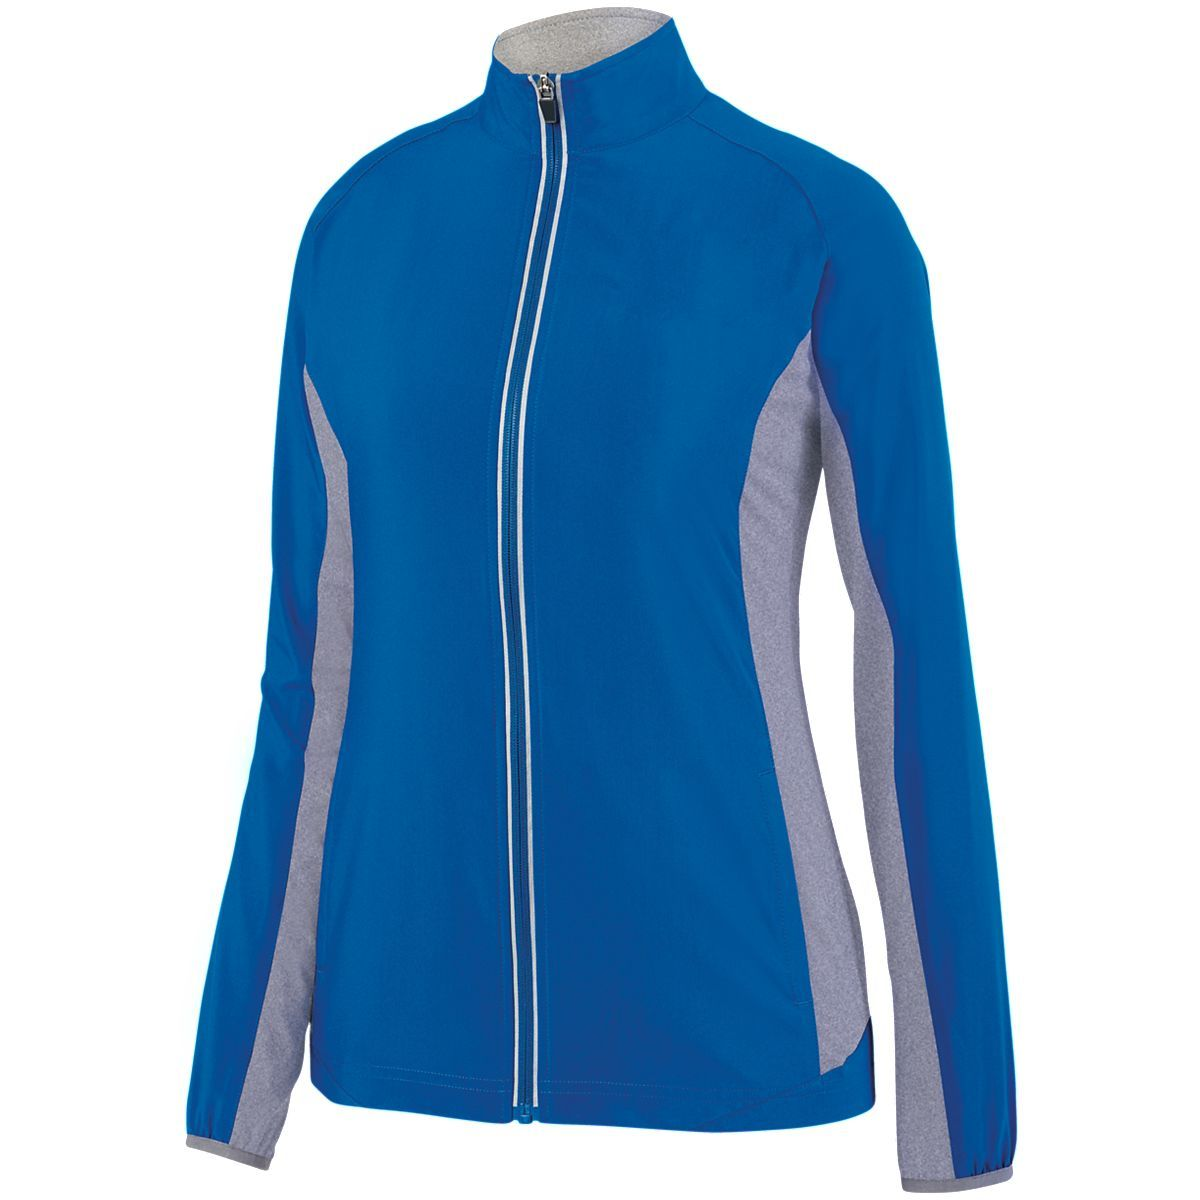 Ladies Preeminent Jacket - ROYAL/GRAPHITE HEATHER